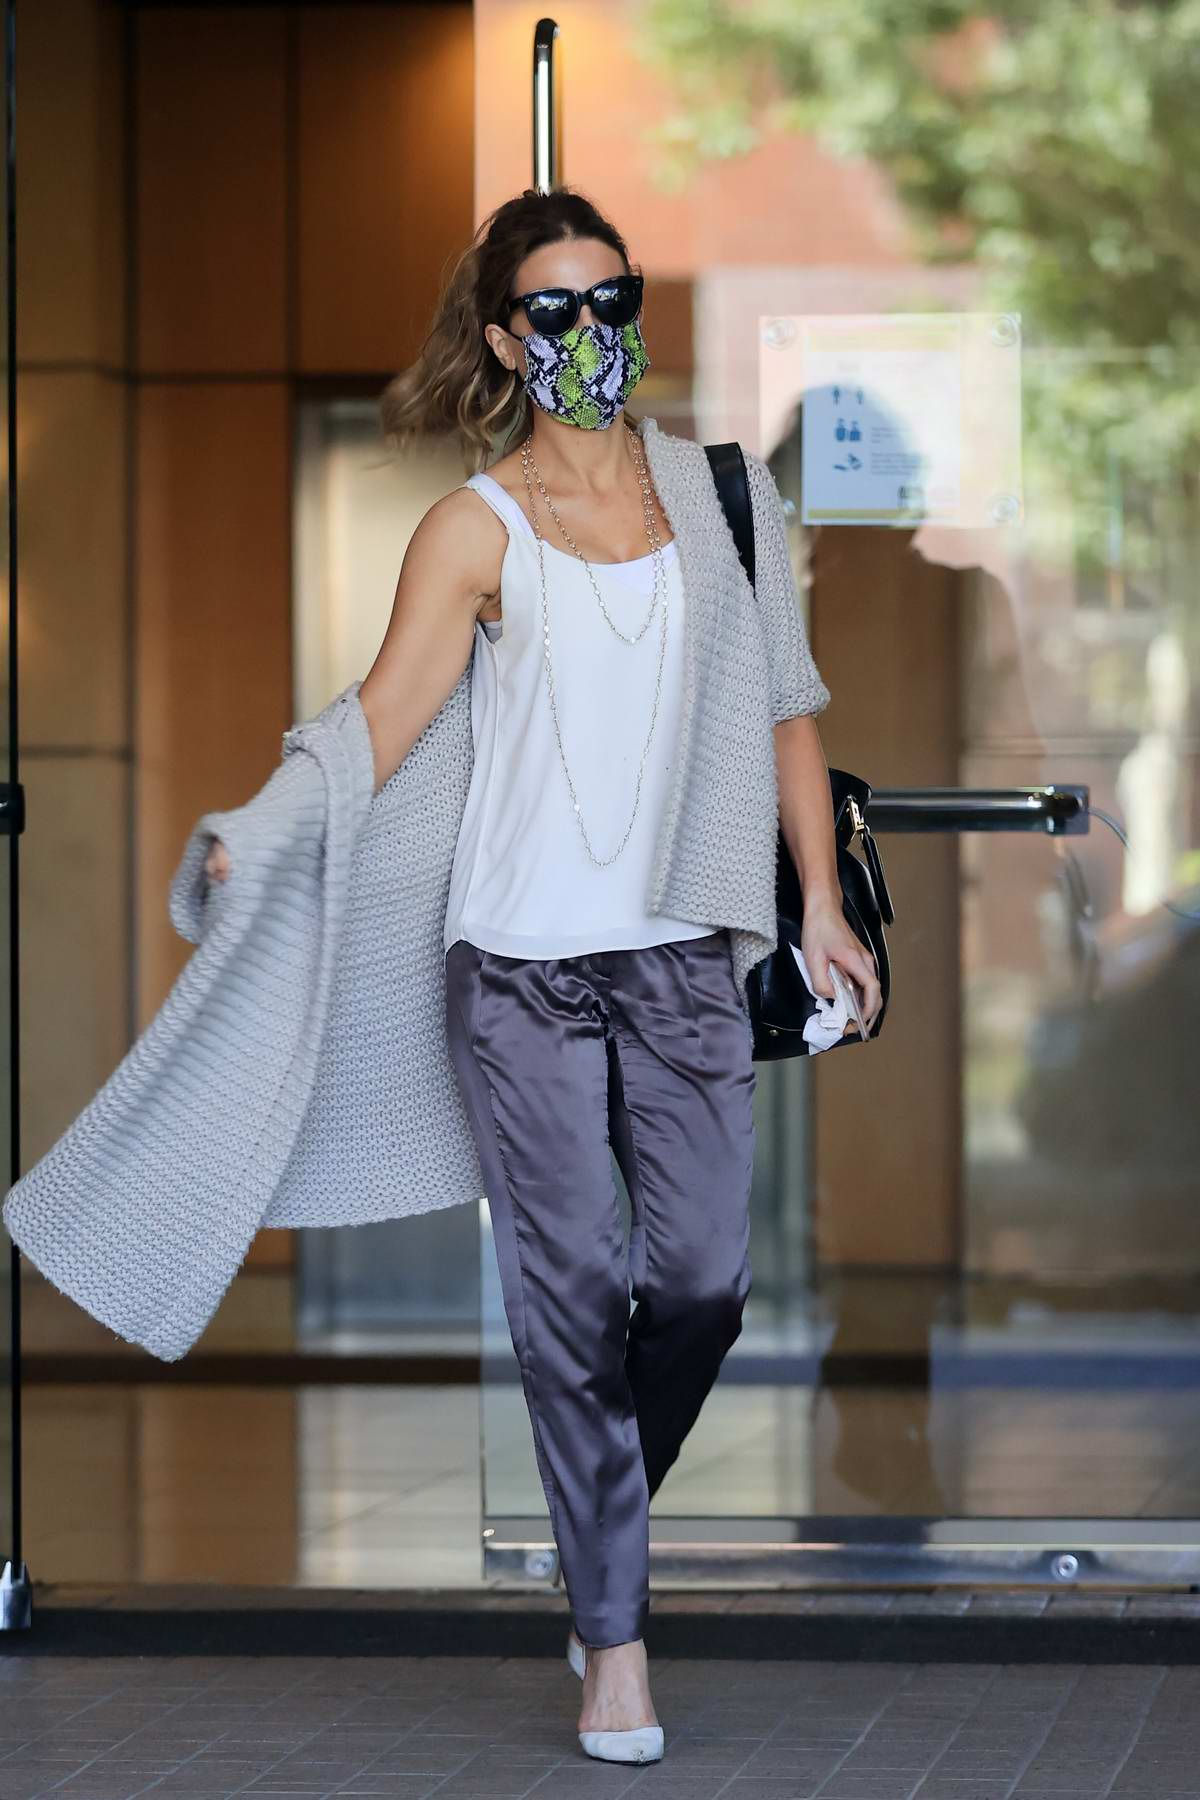 Kate Beckinsale puts on a stylish display during an outing with Goody Grace in Los Angeles